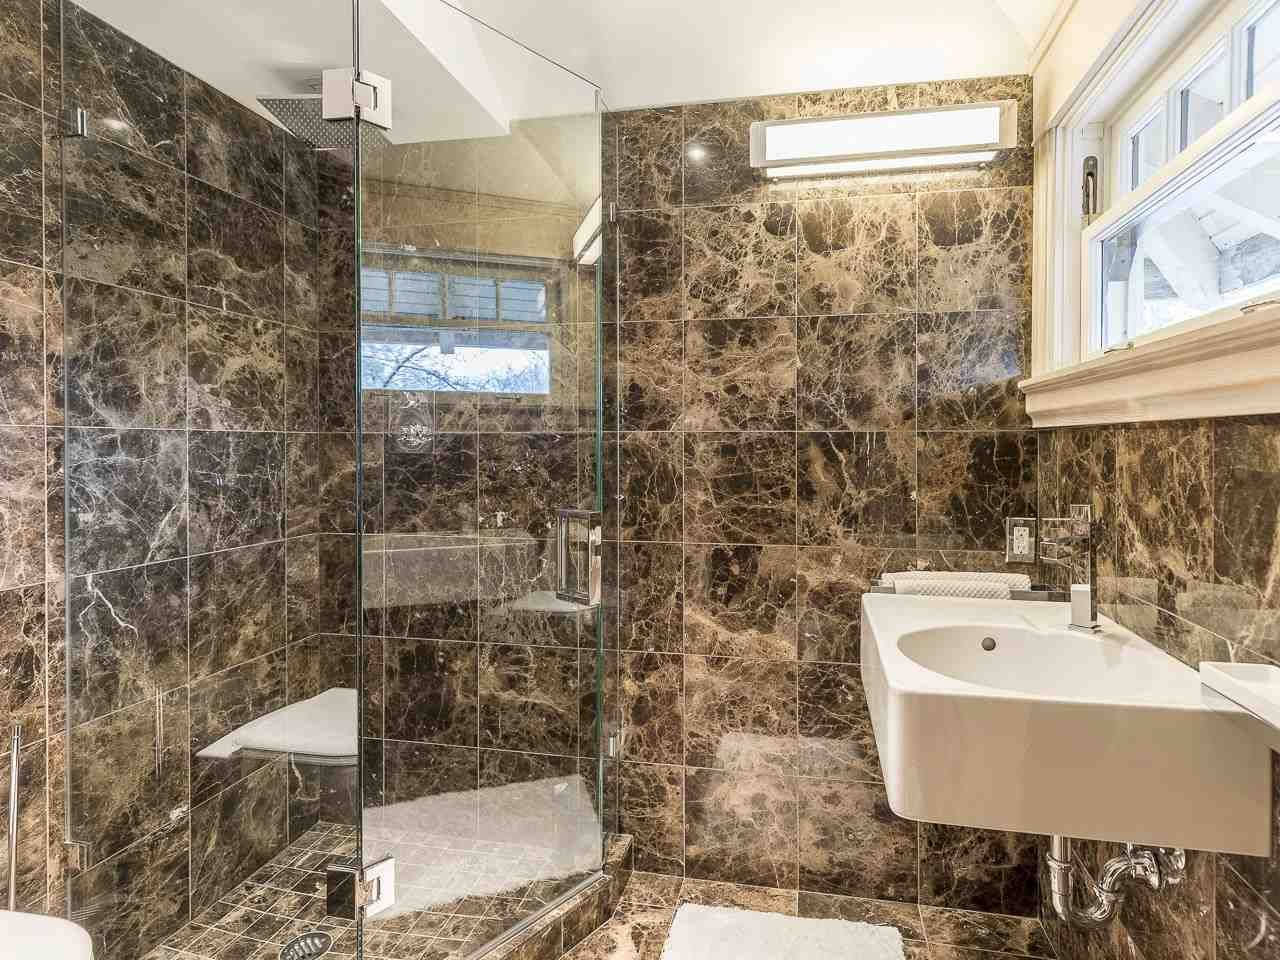 Photo 22: Photos: 3369 THE CRESCENT in Vancouver: Shaughnessy House for sale (Vancouver West)  : MLS®# R2534743